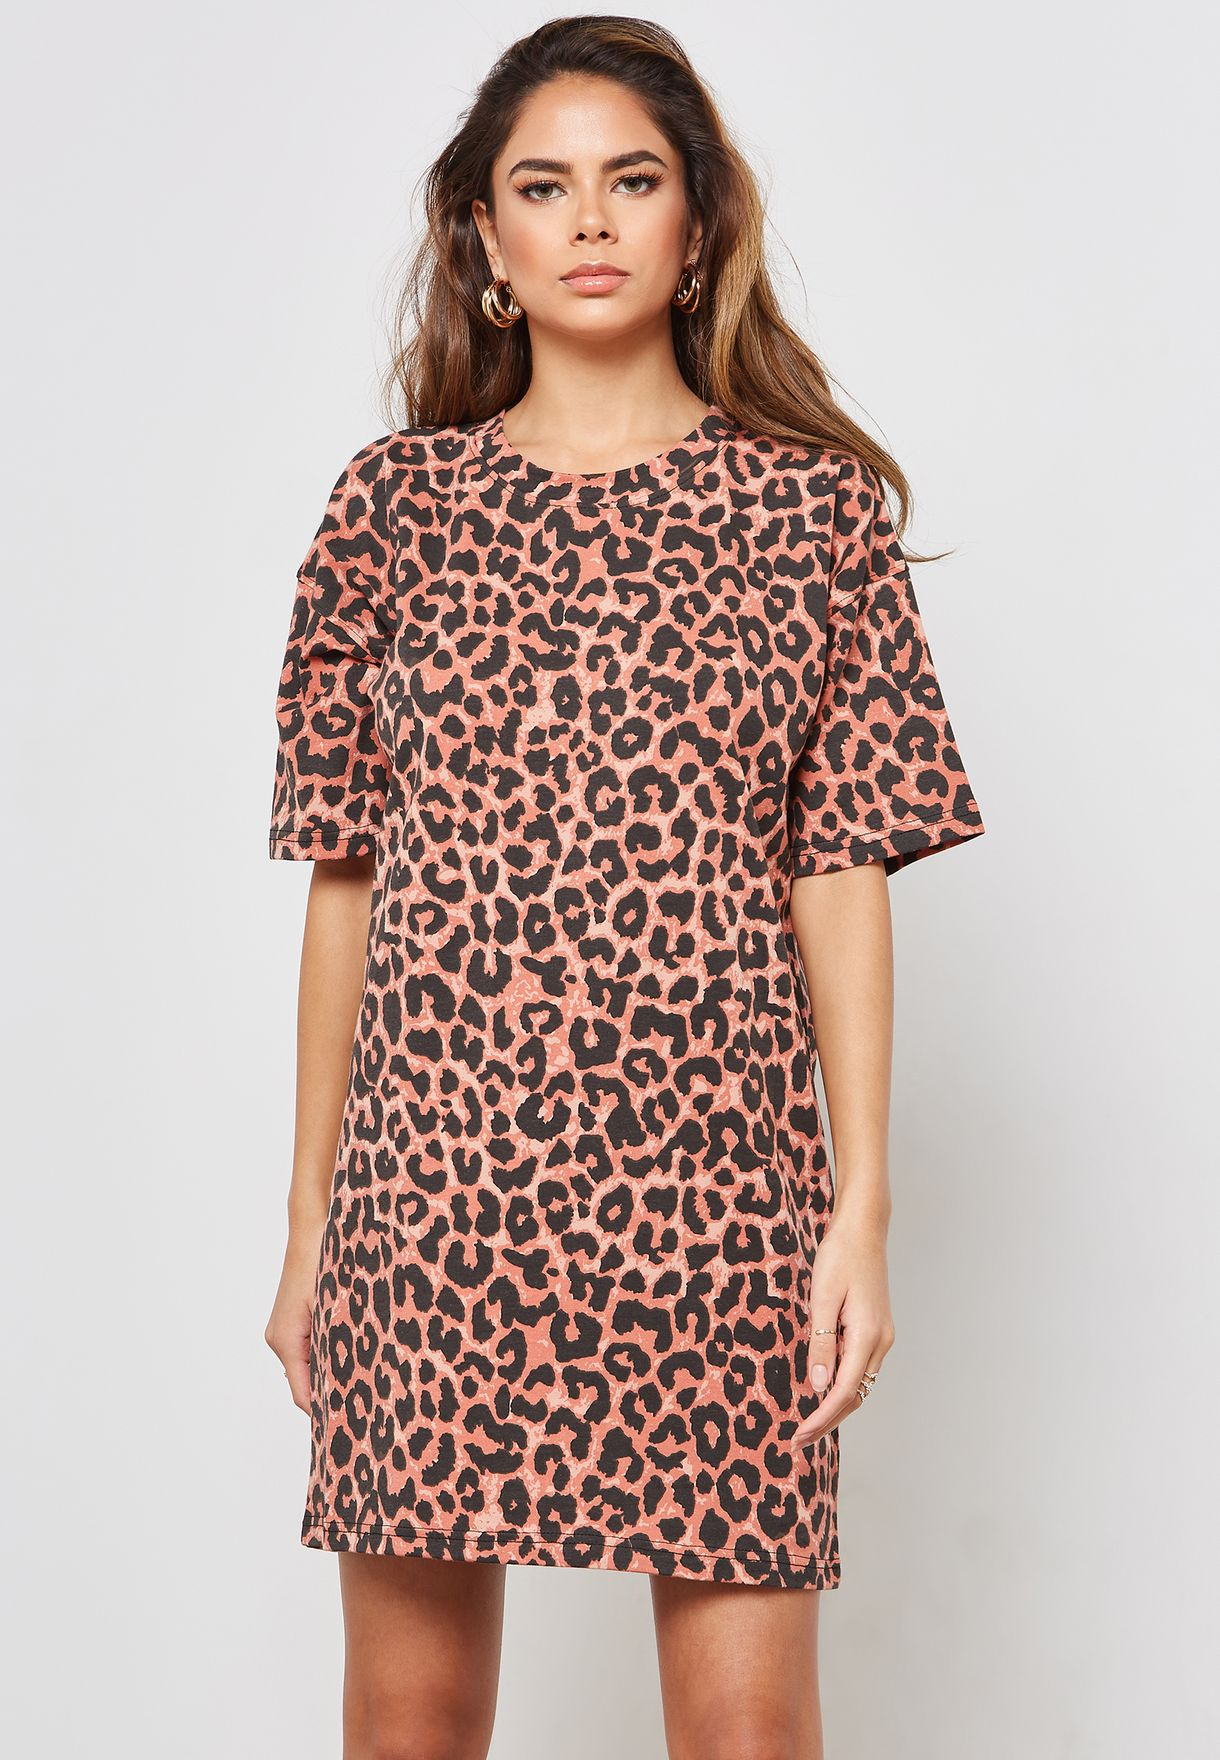 Oversized Leopard Print Short Sleeve Mini Dress